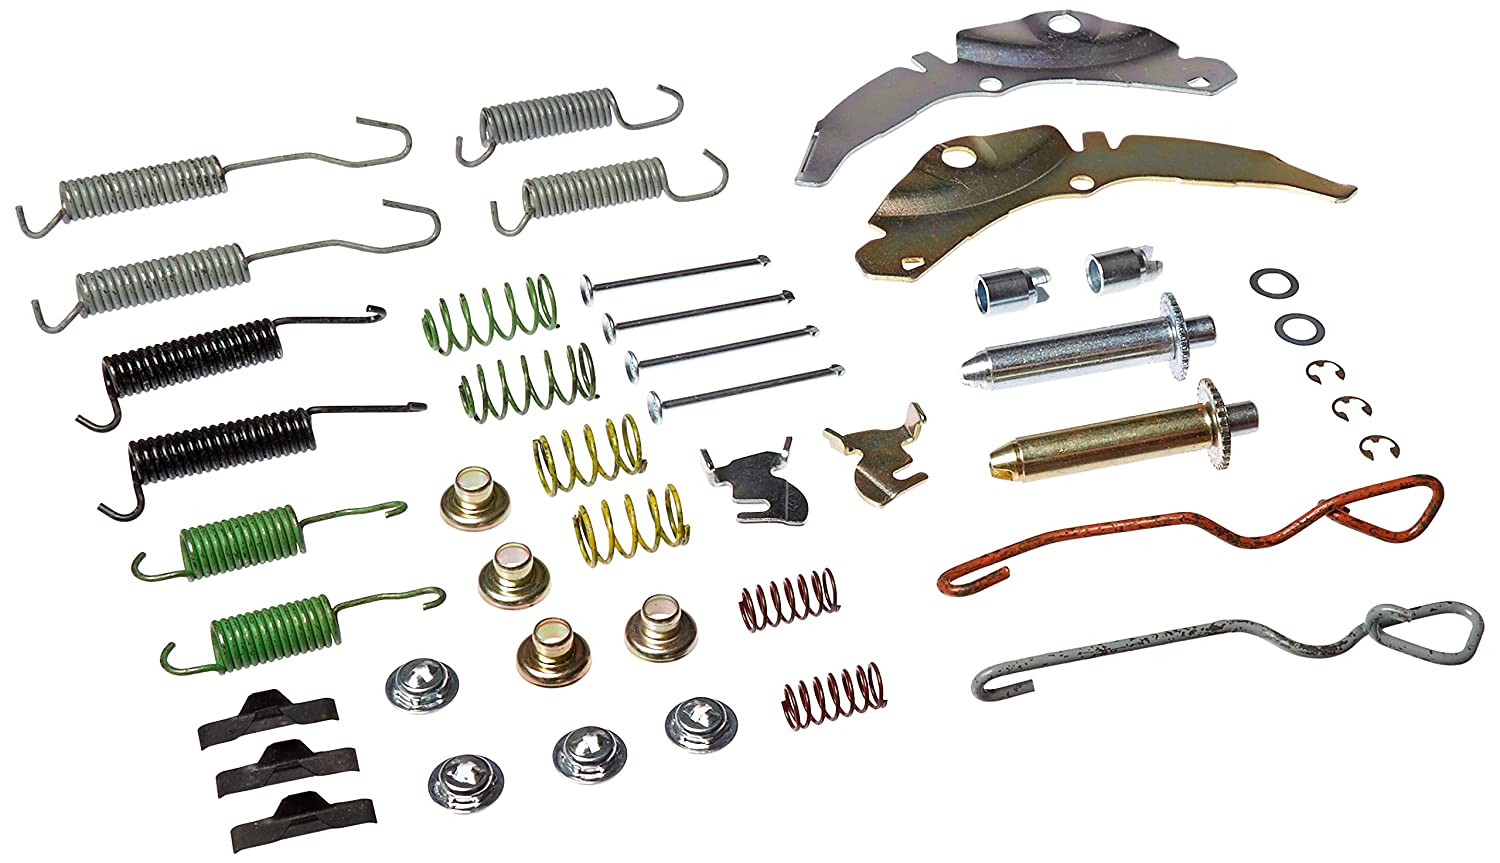 Carlson H2324 Rear Drum Brake Hardware Kit Carlson (CASZC)